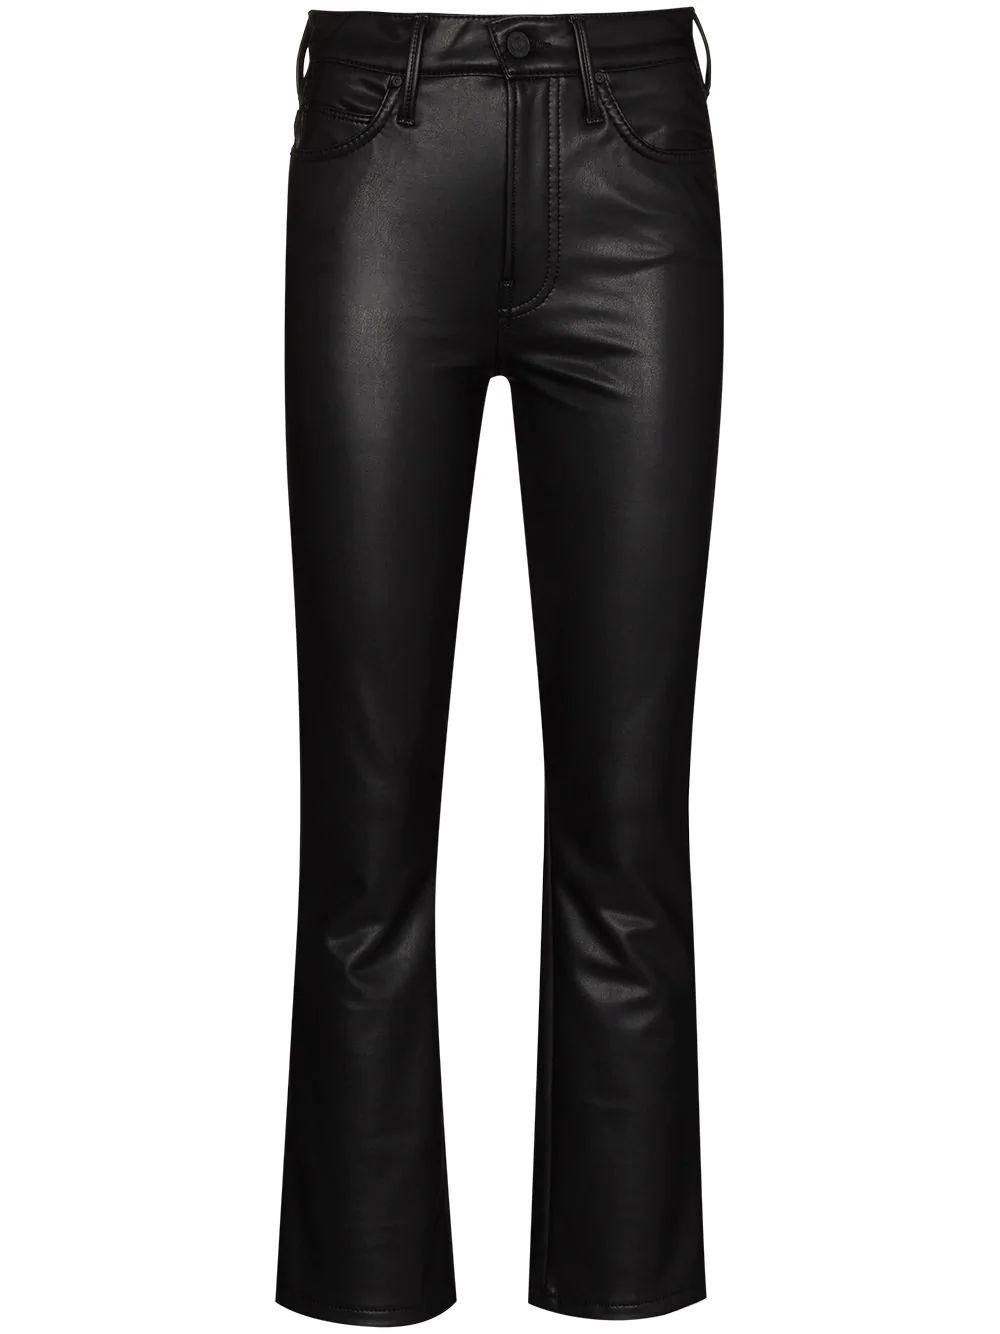 The Insider Cropped Faux- Leather Pant Item # 1327-771-FXS